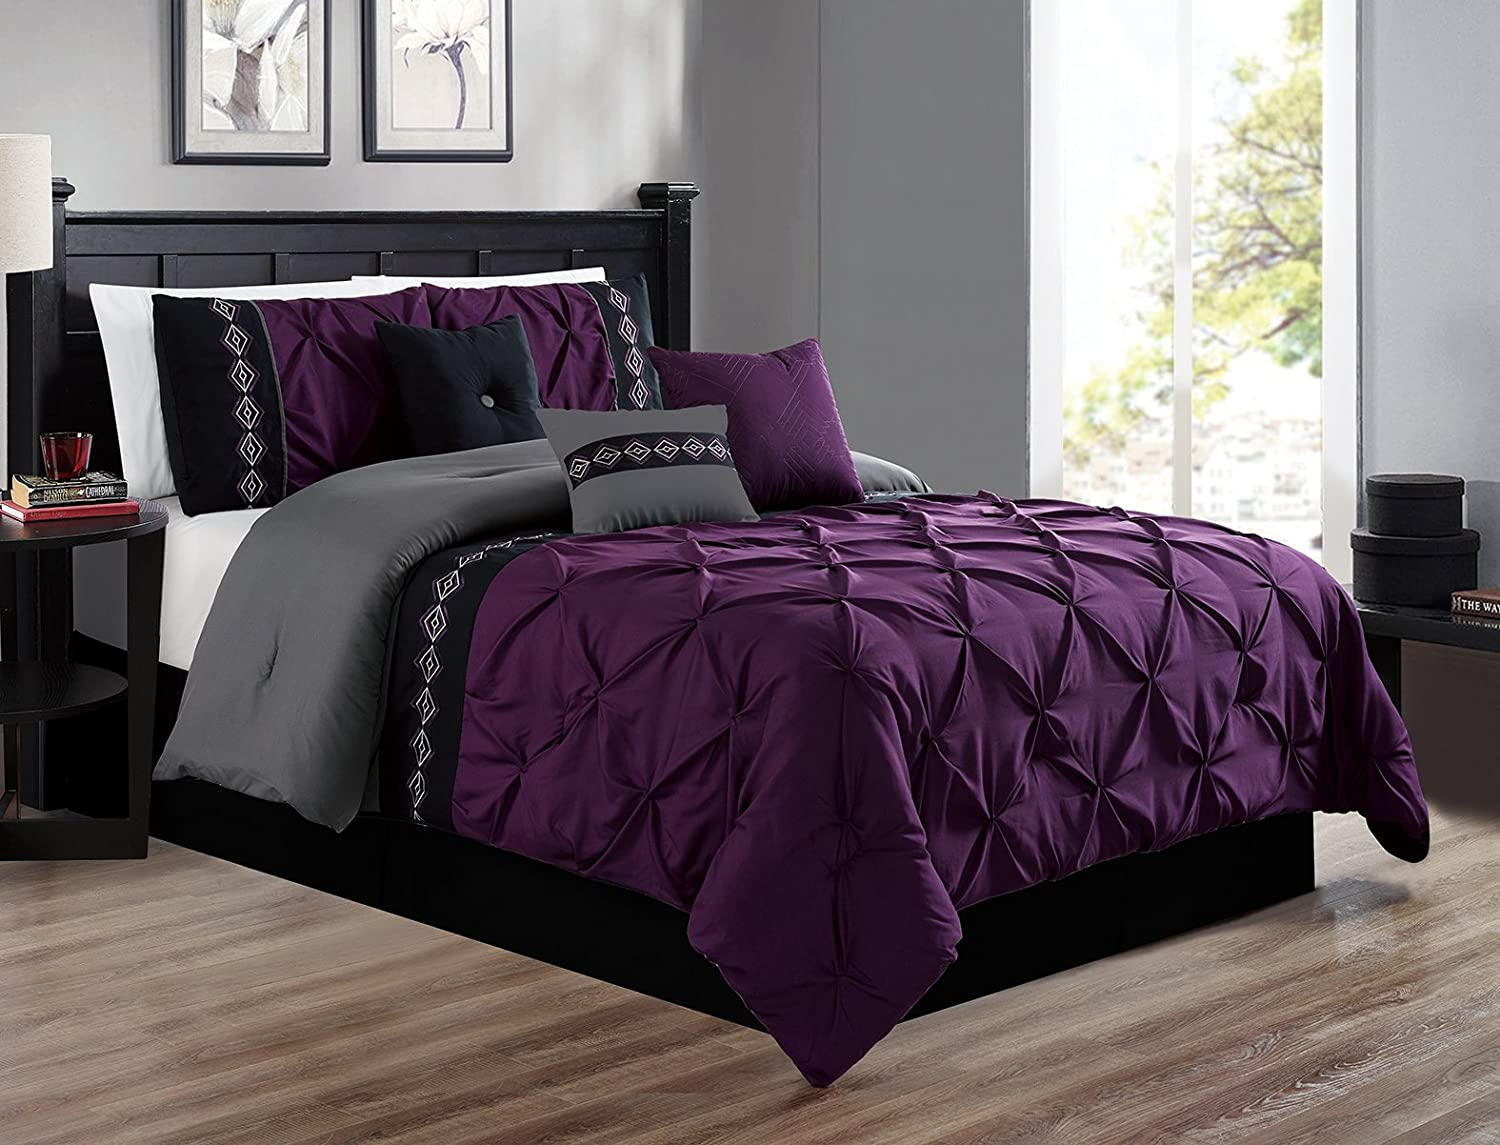 Grand Linen 7 Pieces (California) Cal King Size Dark Purple/Grey/Black  Double-Needle Stitch Pinch Pleat All-Season Bedding-Goose Down Alternative  ...